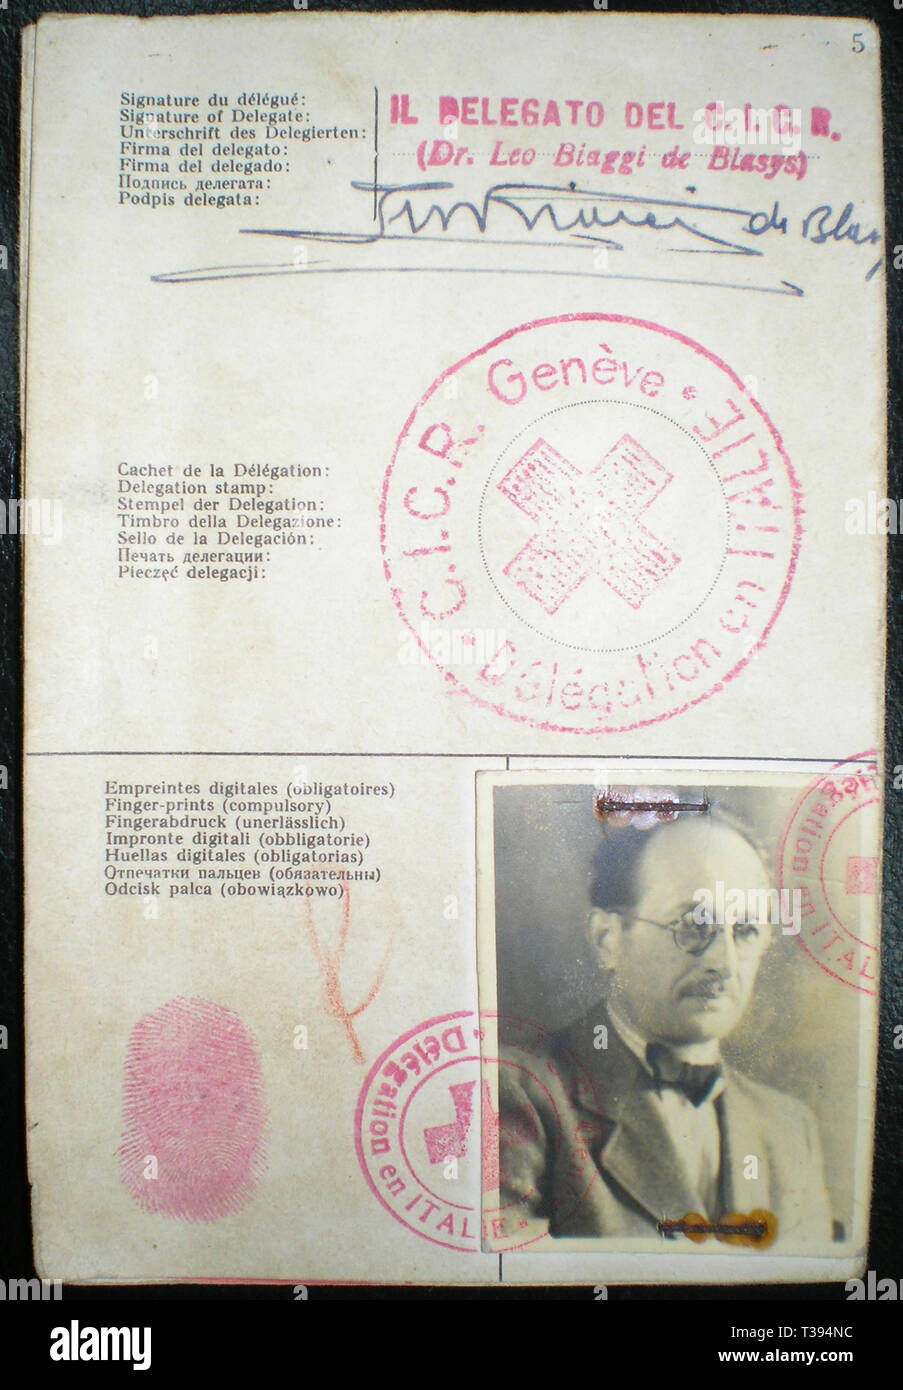 Adolf Eichmann, The Red Cross identitity document Adolf Eichmann used to enter Argentina under the alias Ricardo Klement in 1950, issued by the Italian delegation of the Red Cross Stock Photo